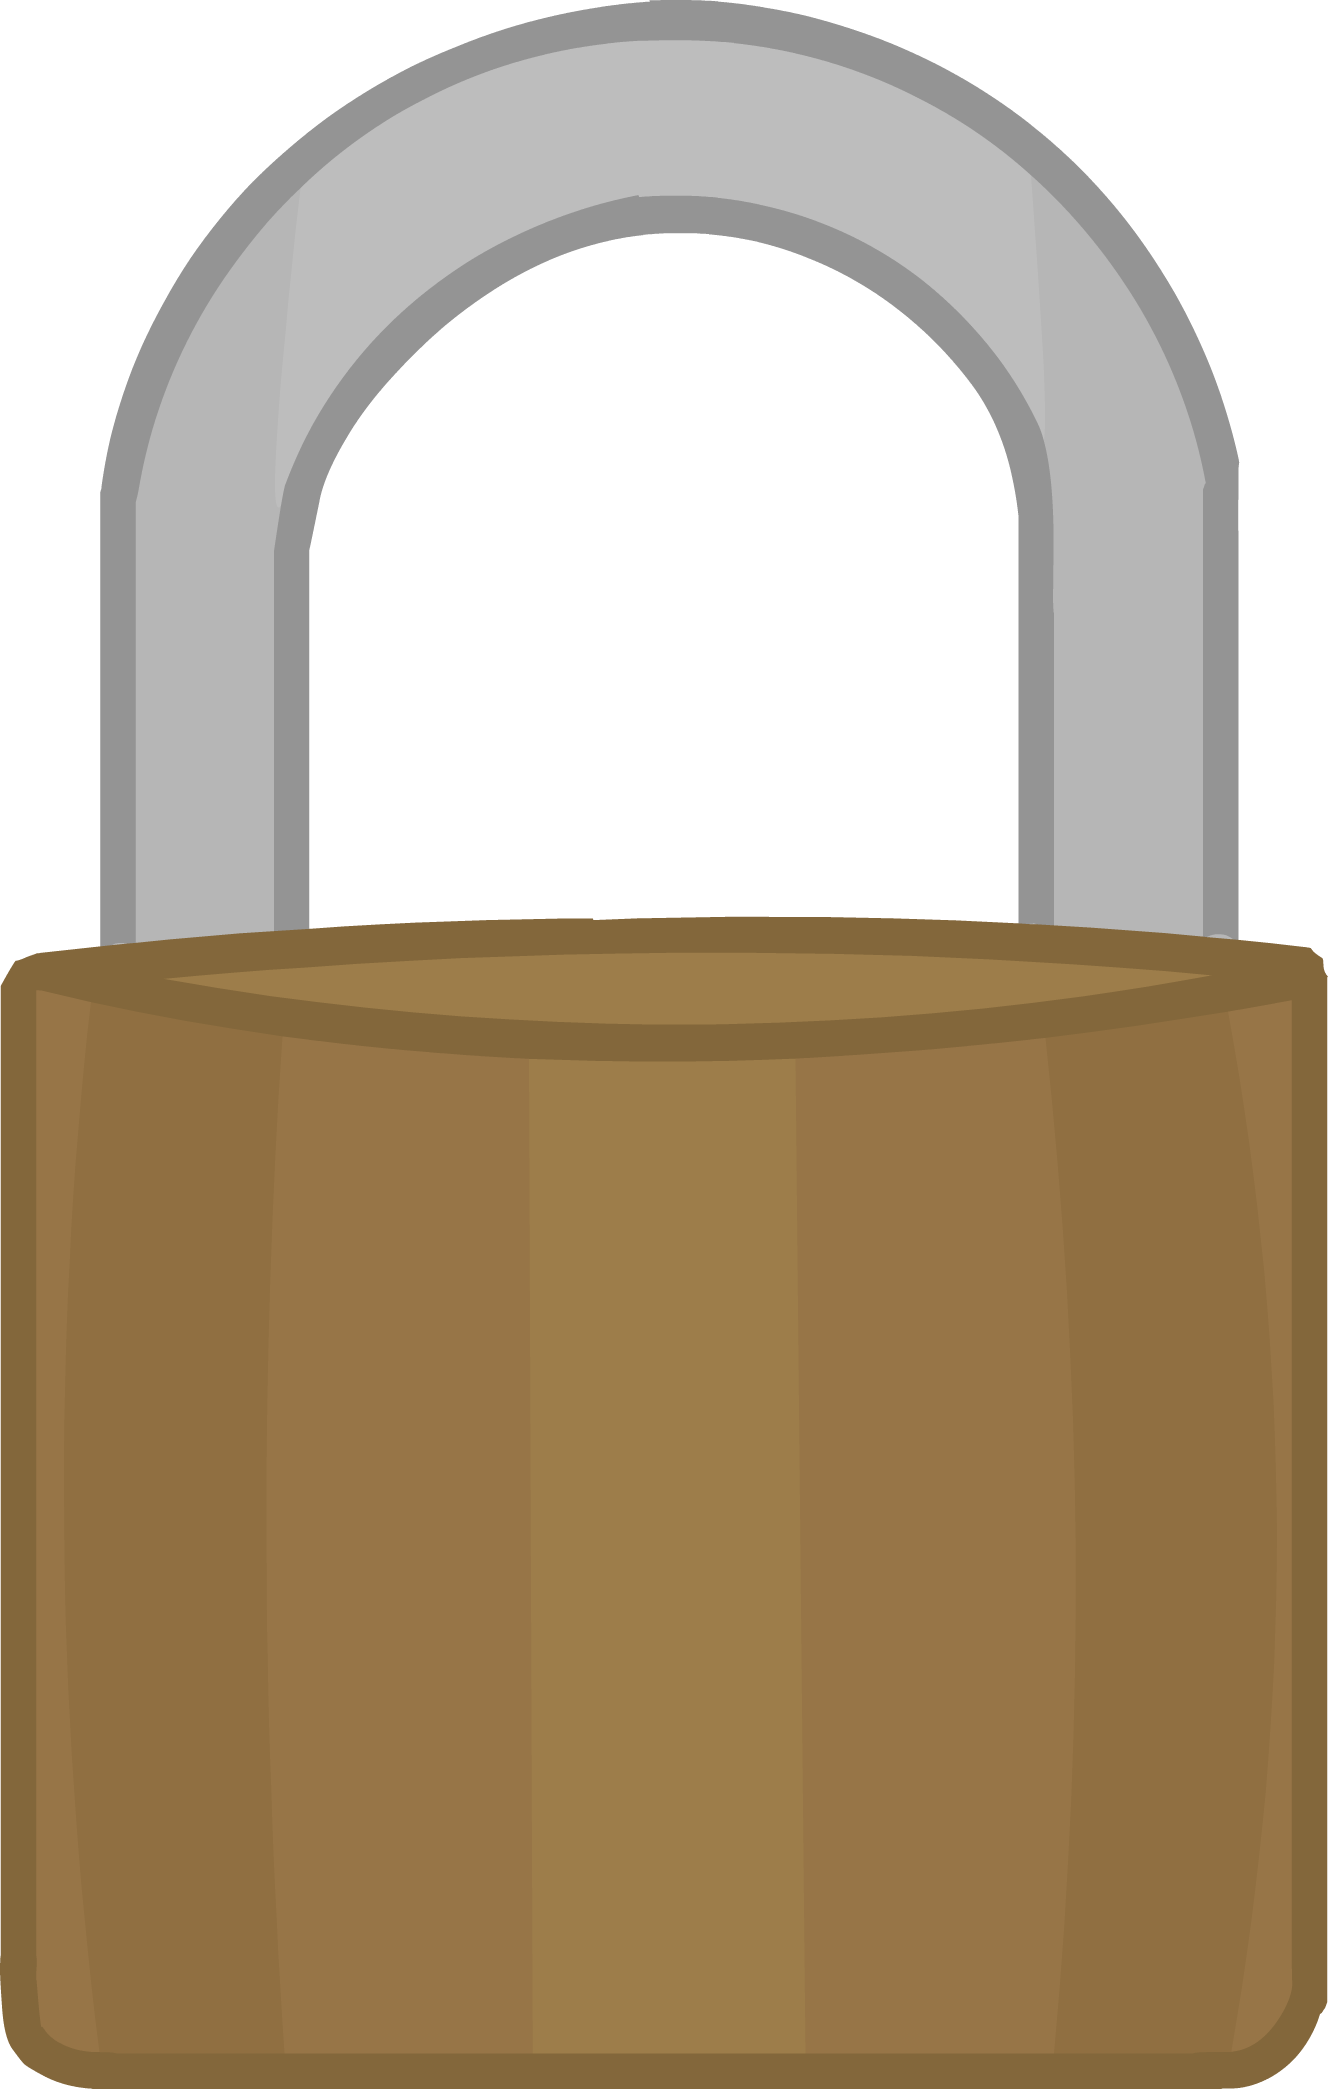 Image body png object. Lock clipart number lock